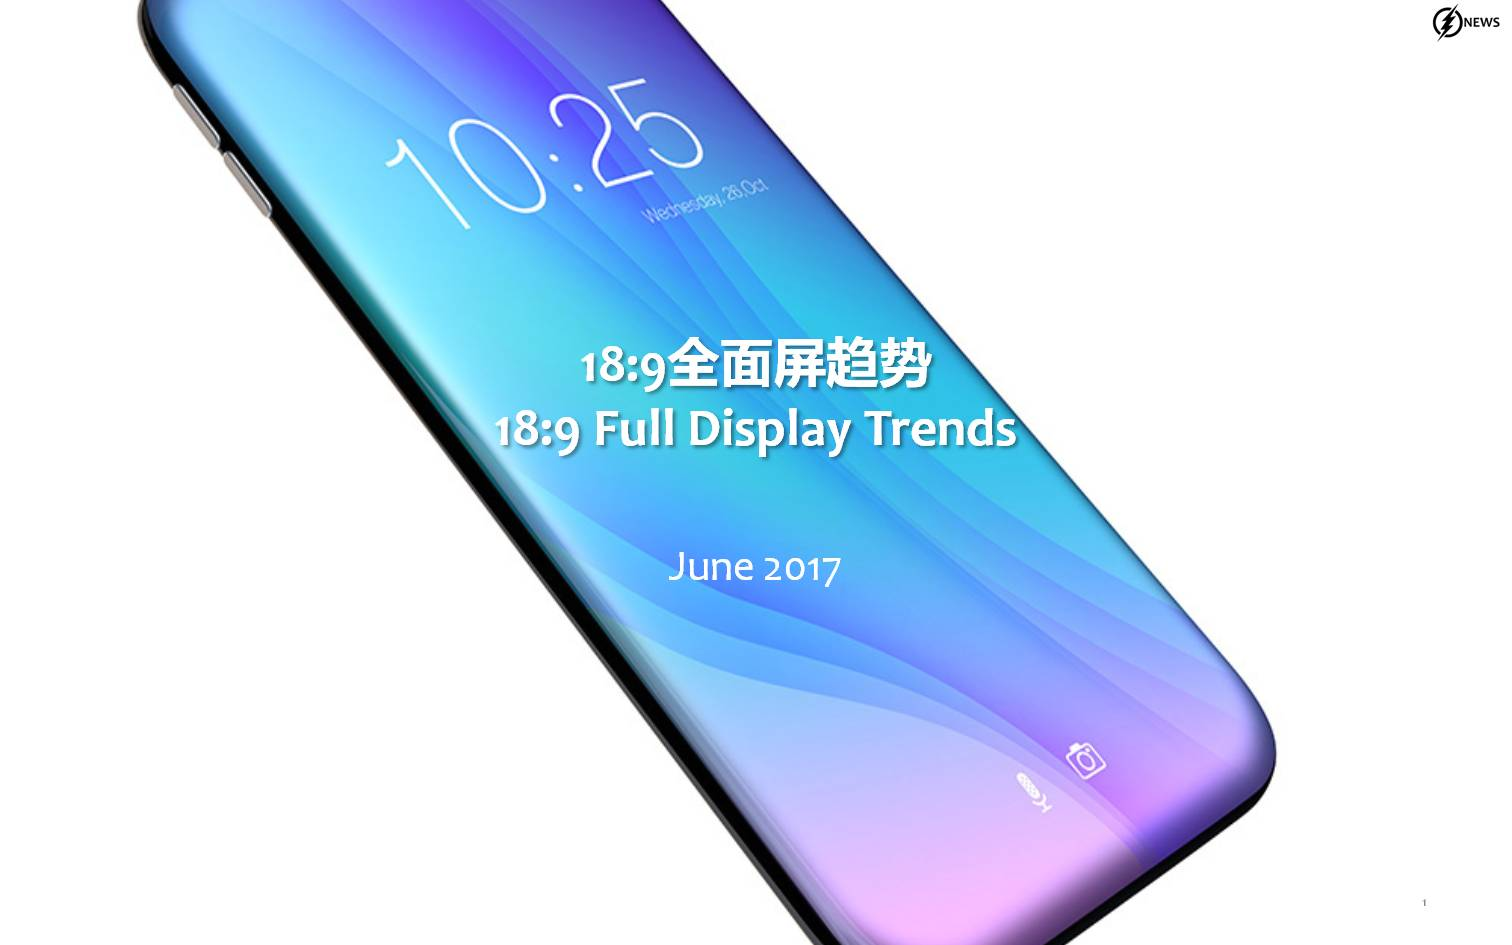 18:9 Full Display Trends – IF / News